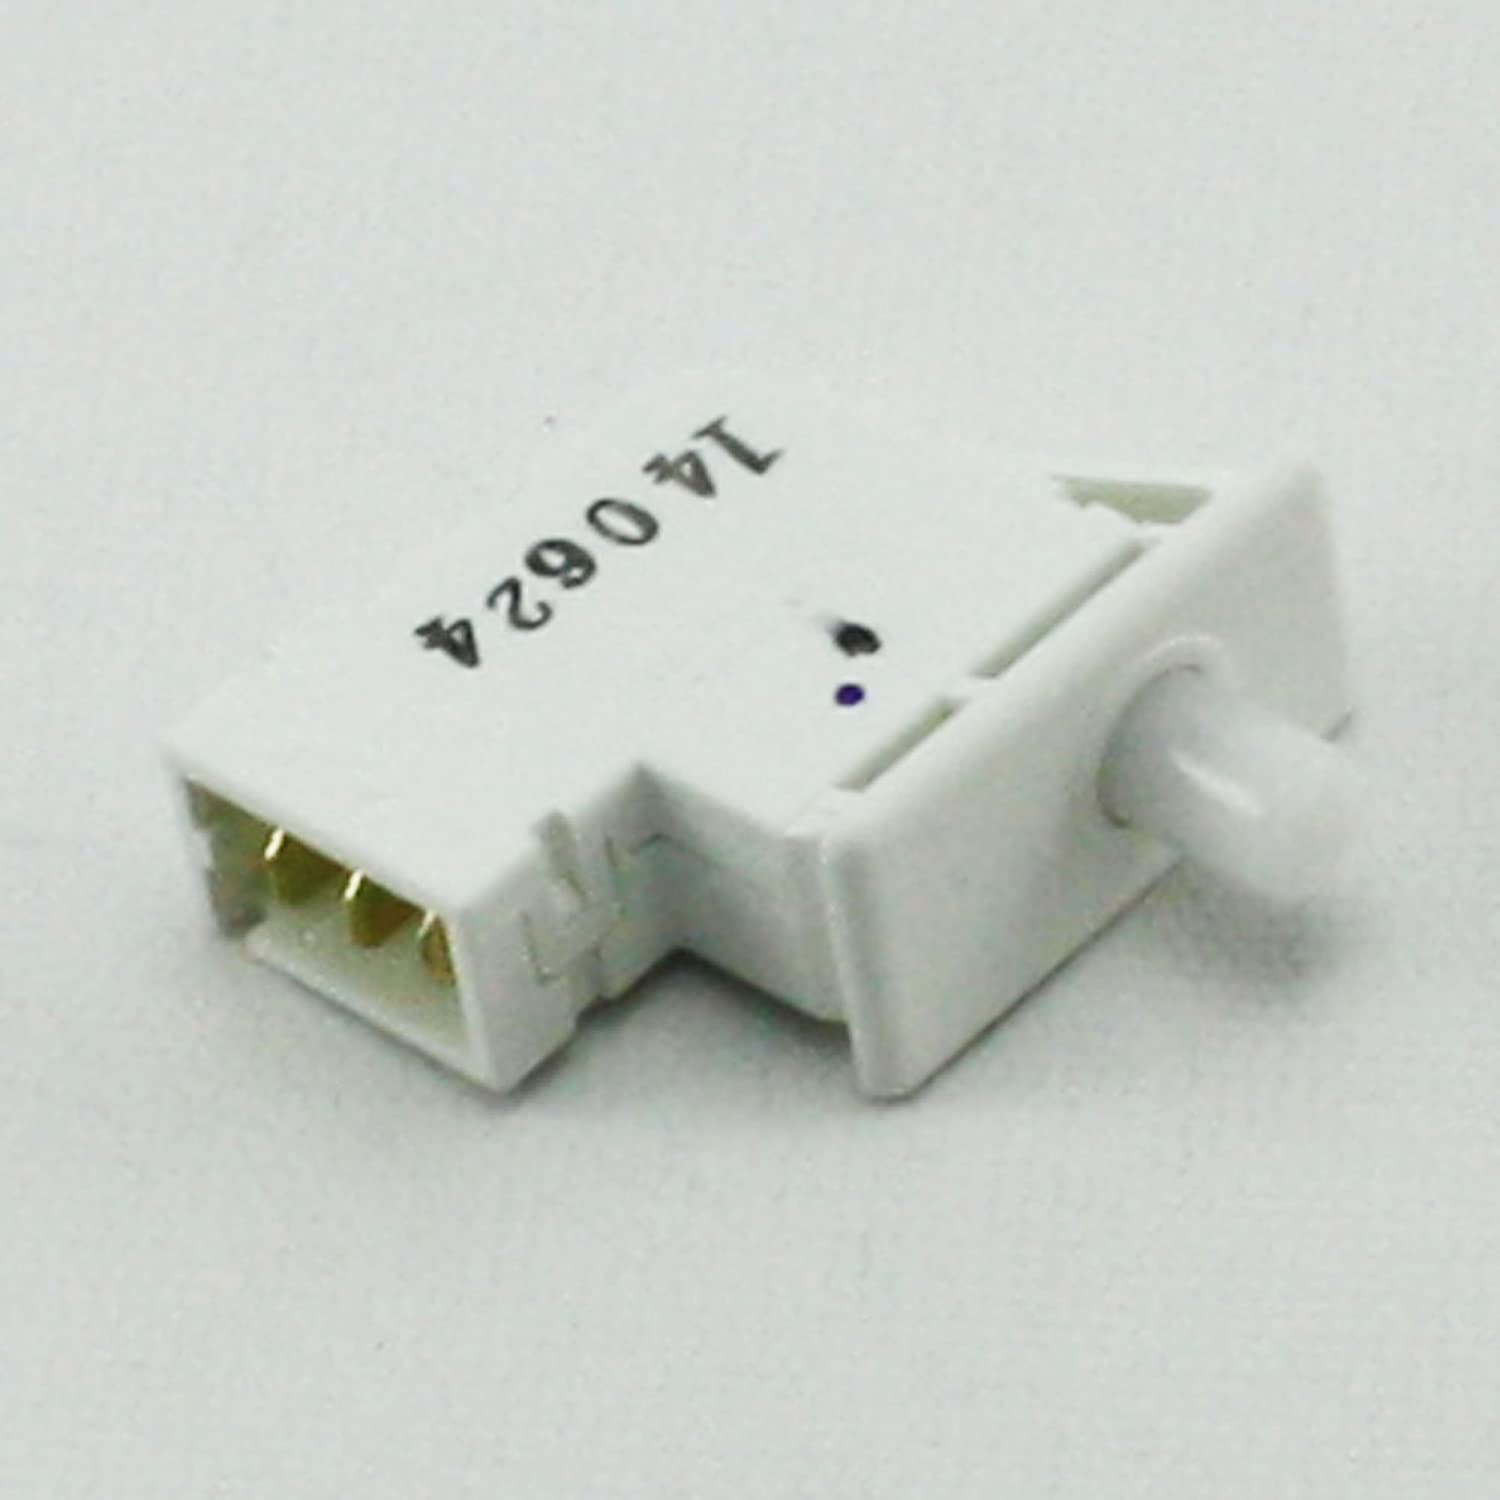 719F168%2B2rL._SL1500_ amazon com lg electronics 6601el3001a dryer door switch assem  at bayanpartner.co